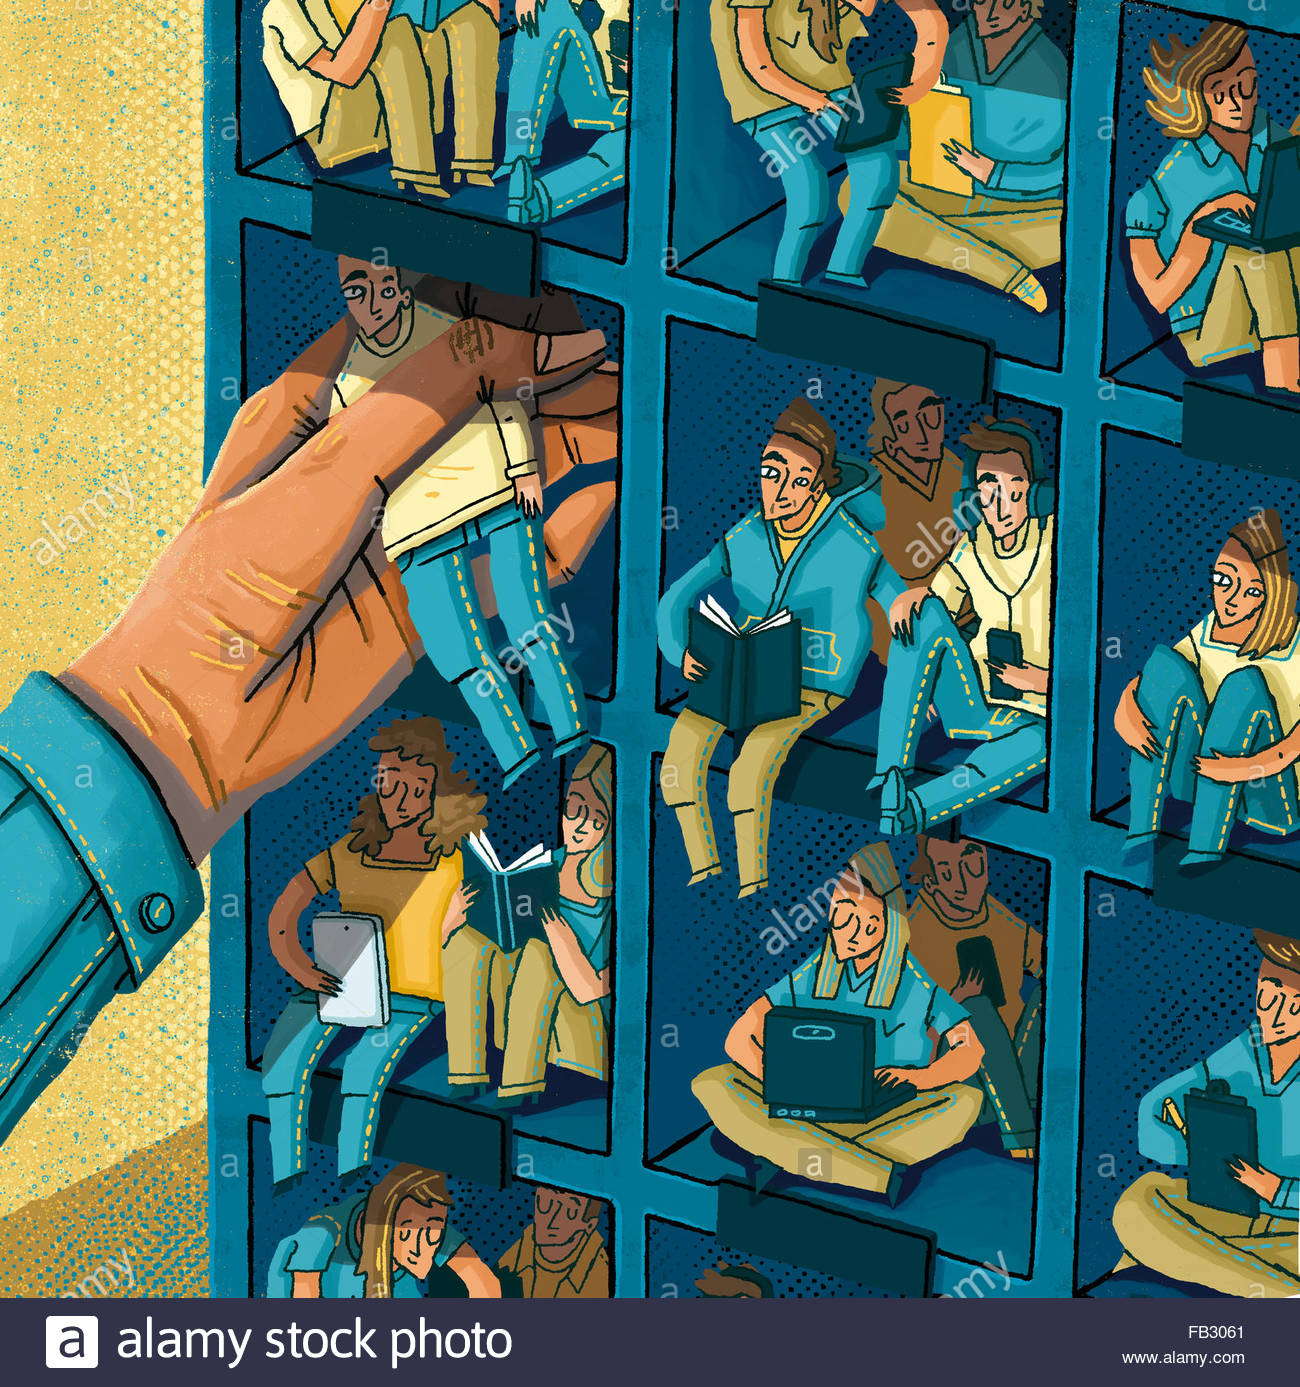 Large hand arranging students in pigeon holes - Stock Image